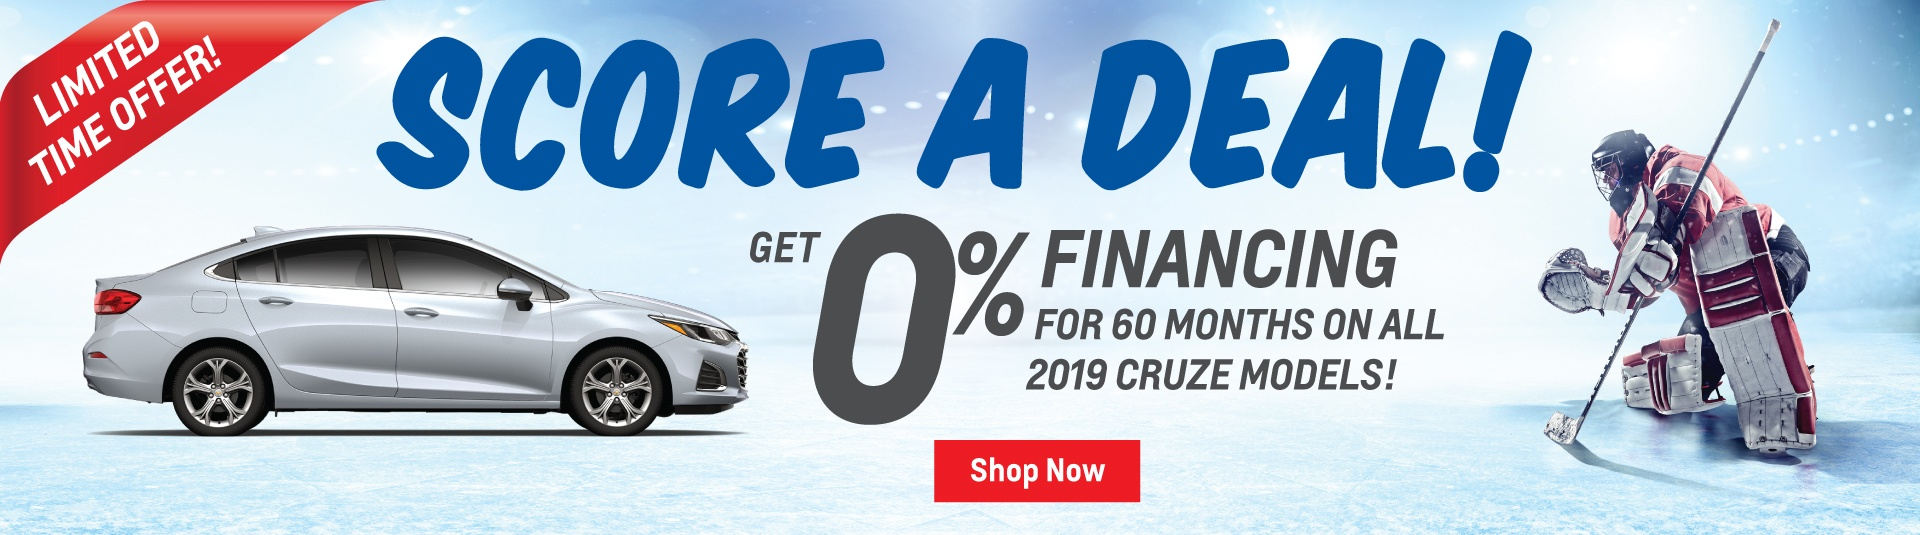 2019 Chevrolet Cruze Finance Offer in Mississauga